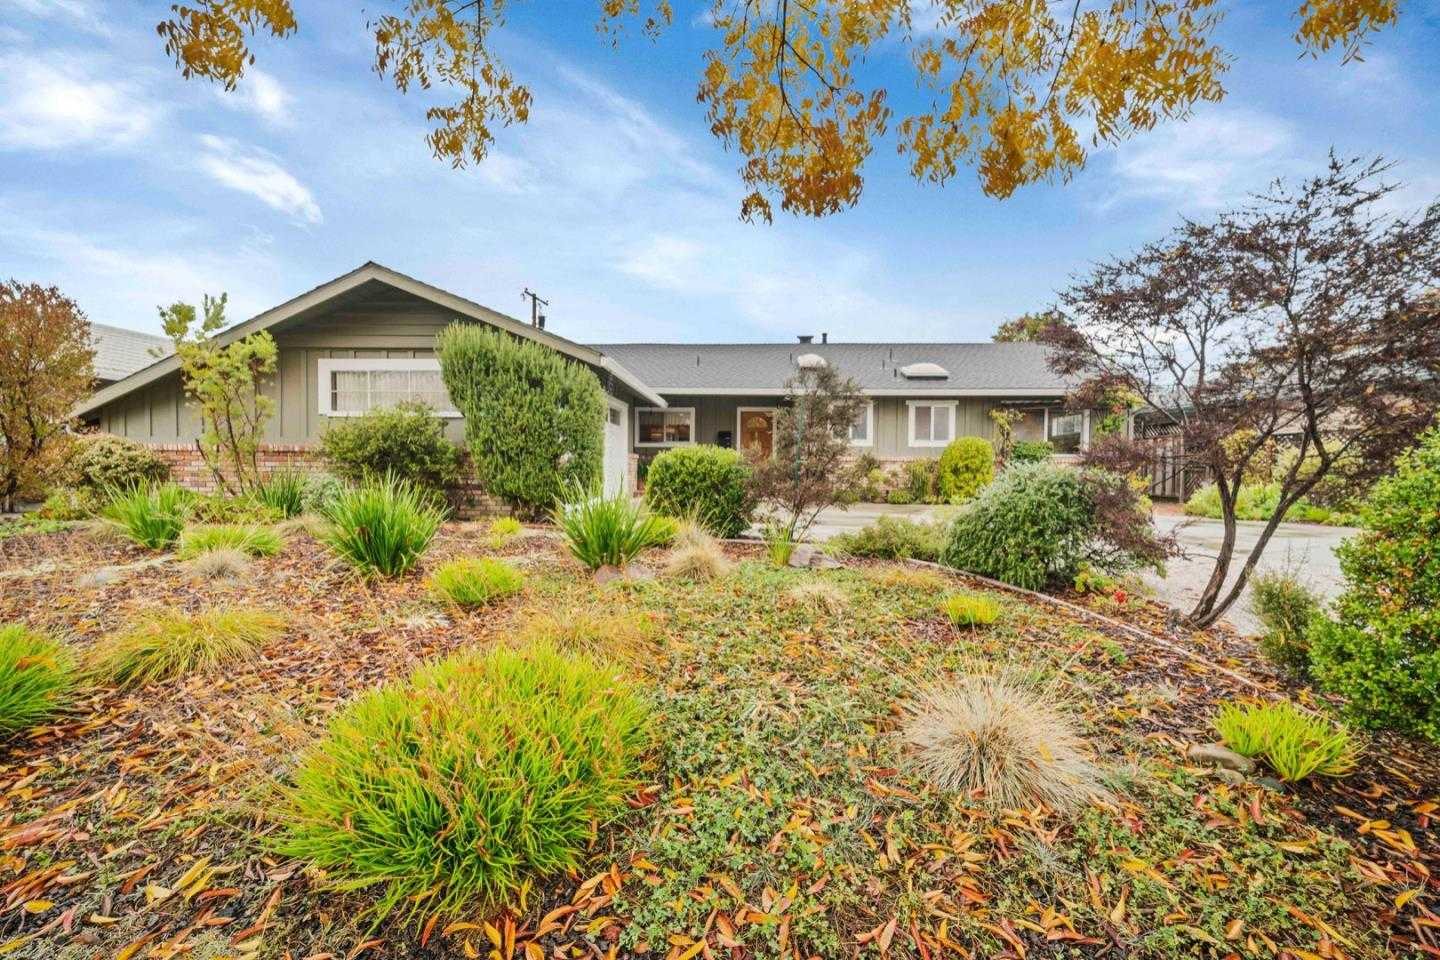 $1,330,000 - 3Br/2Ba -  for Sale in San Jose